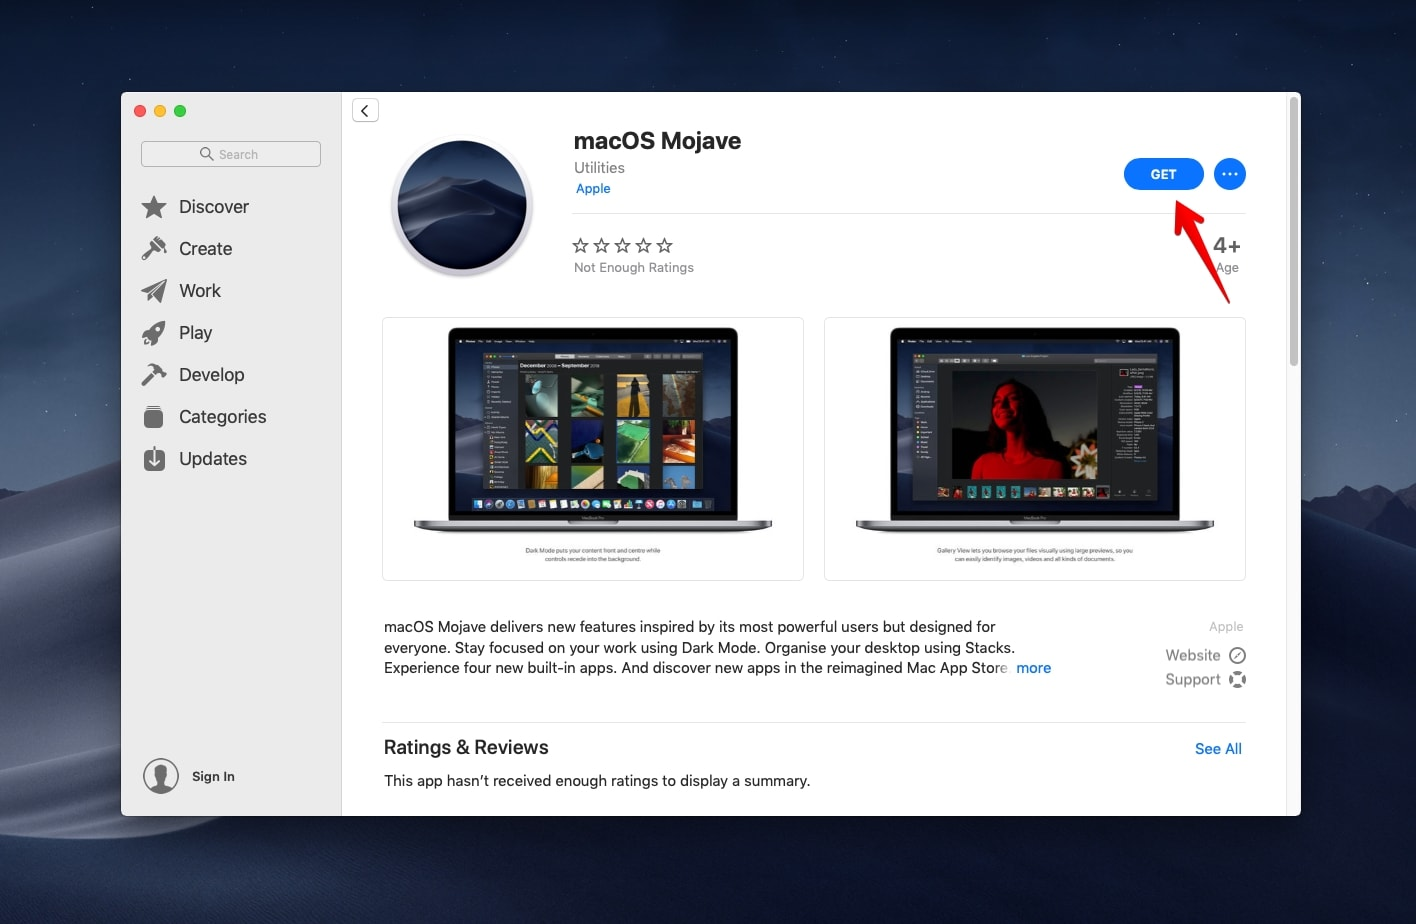 Get macOS Mojave on App Store